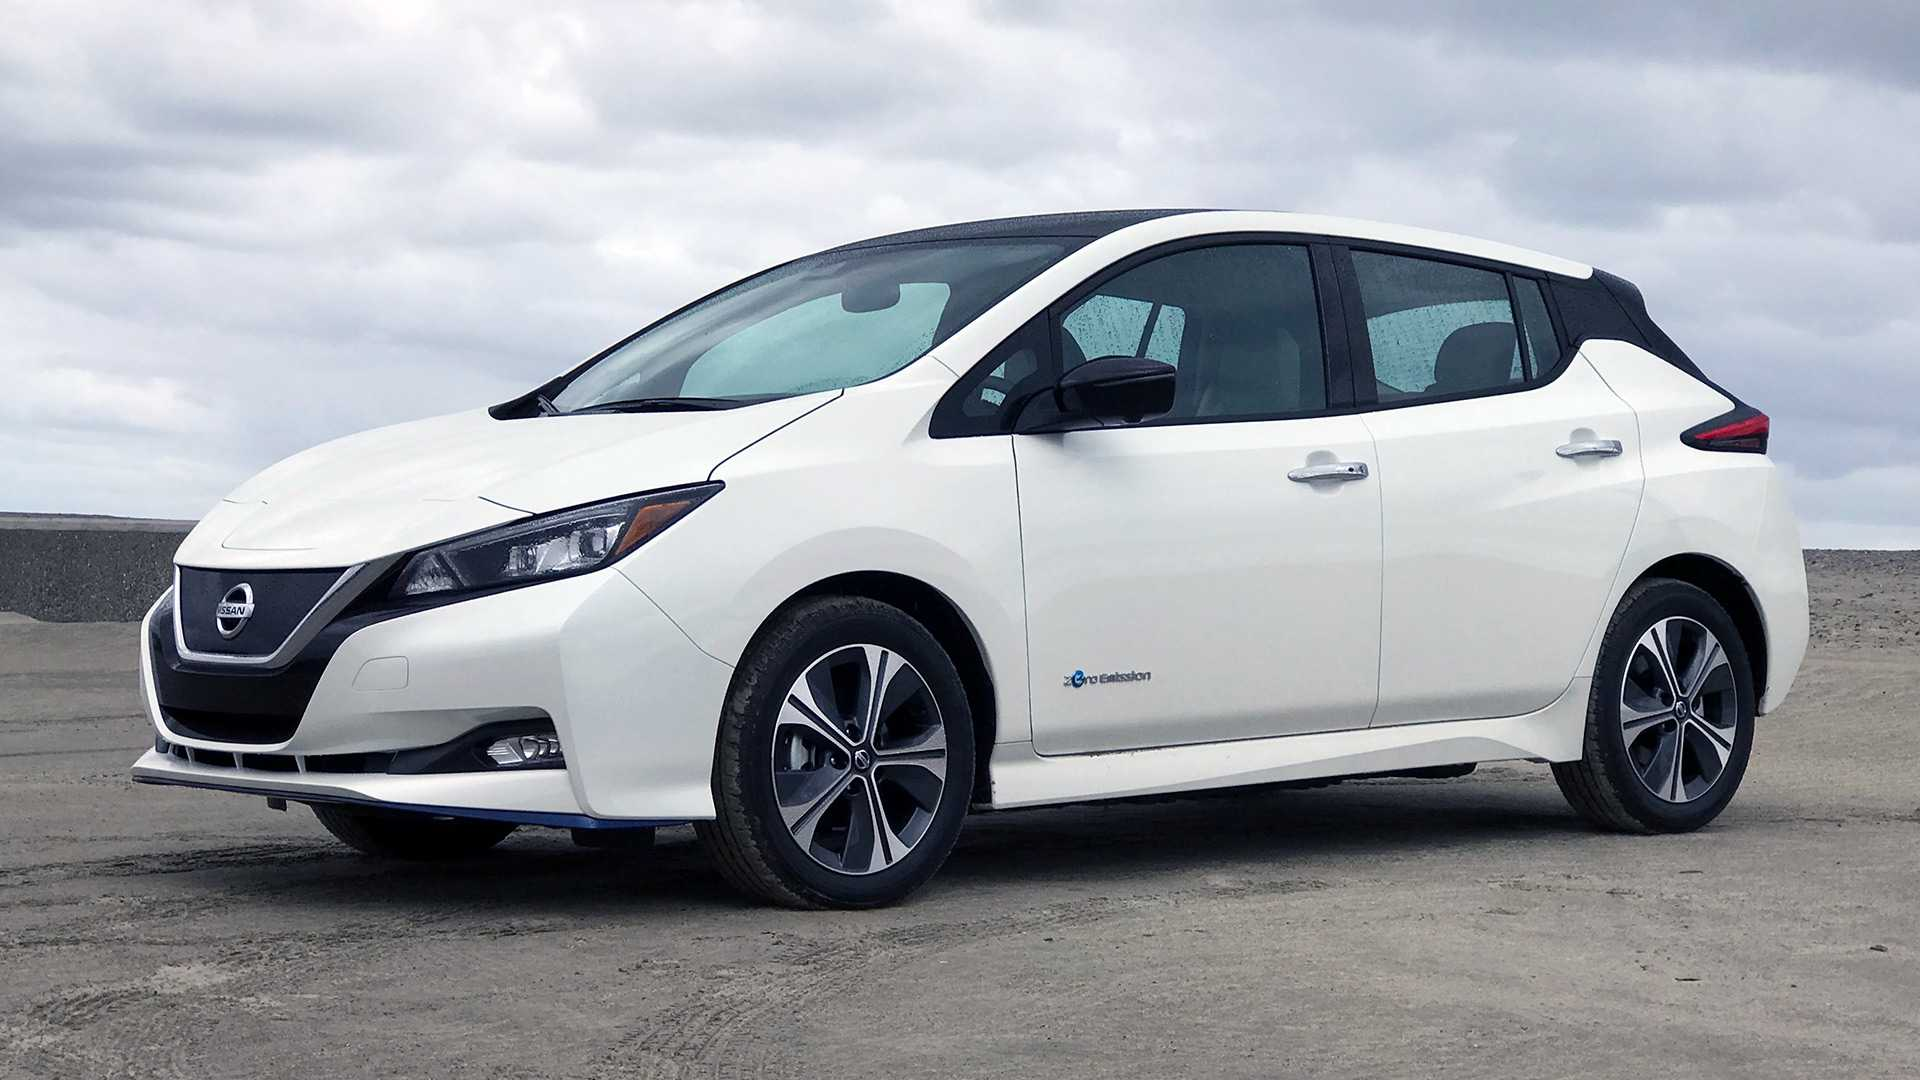 76 Great Nissan Leaf 2019 Review Model for Nissan Leaf 2019 Review